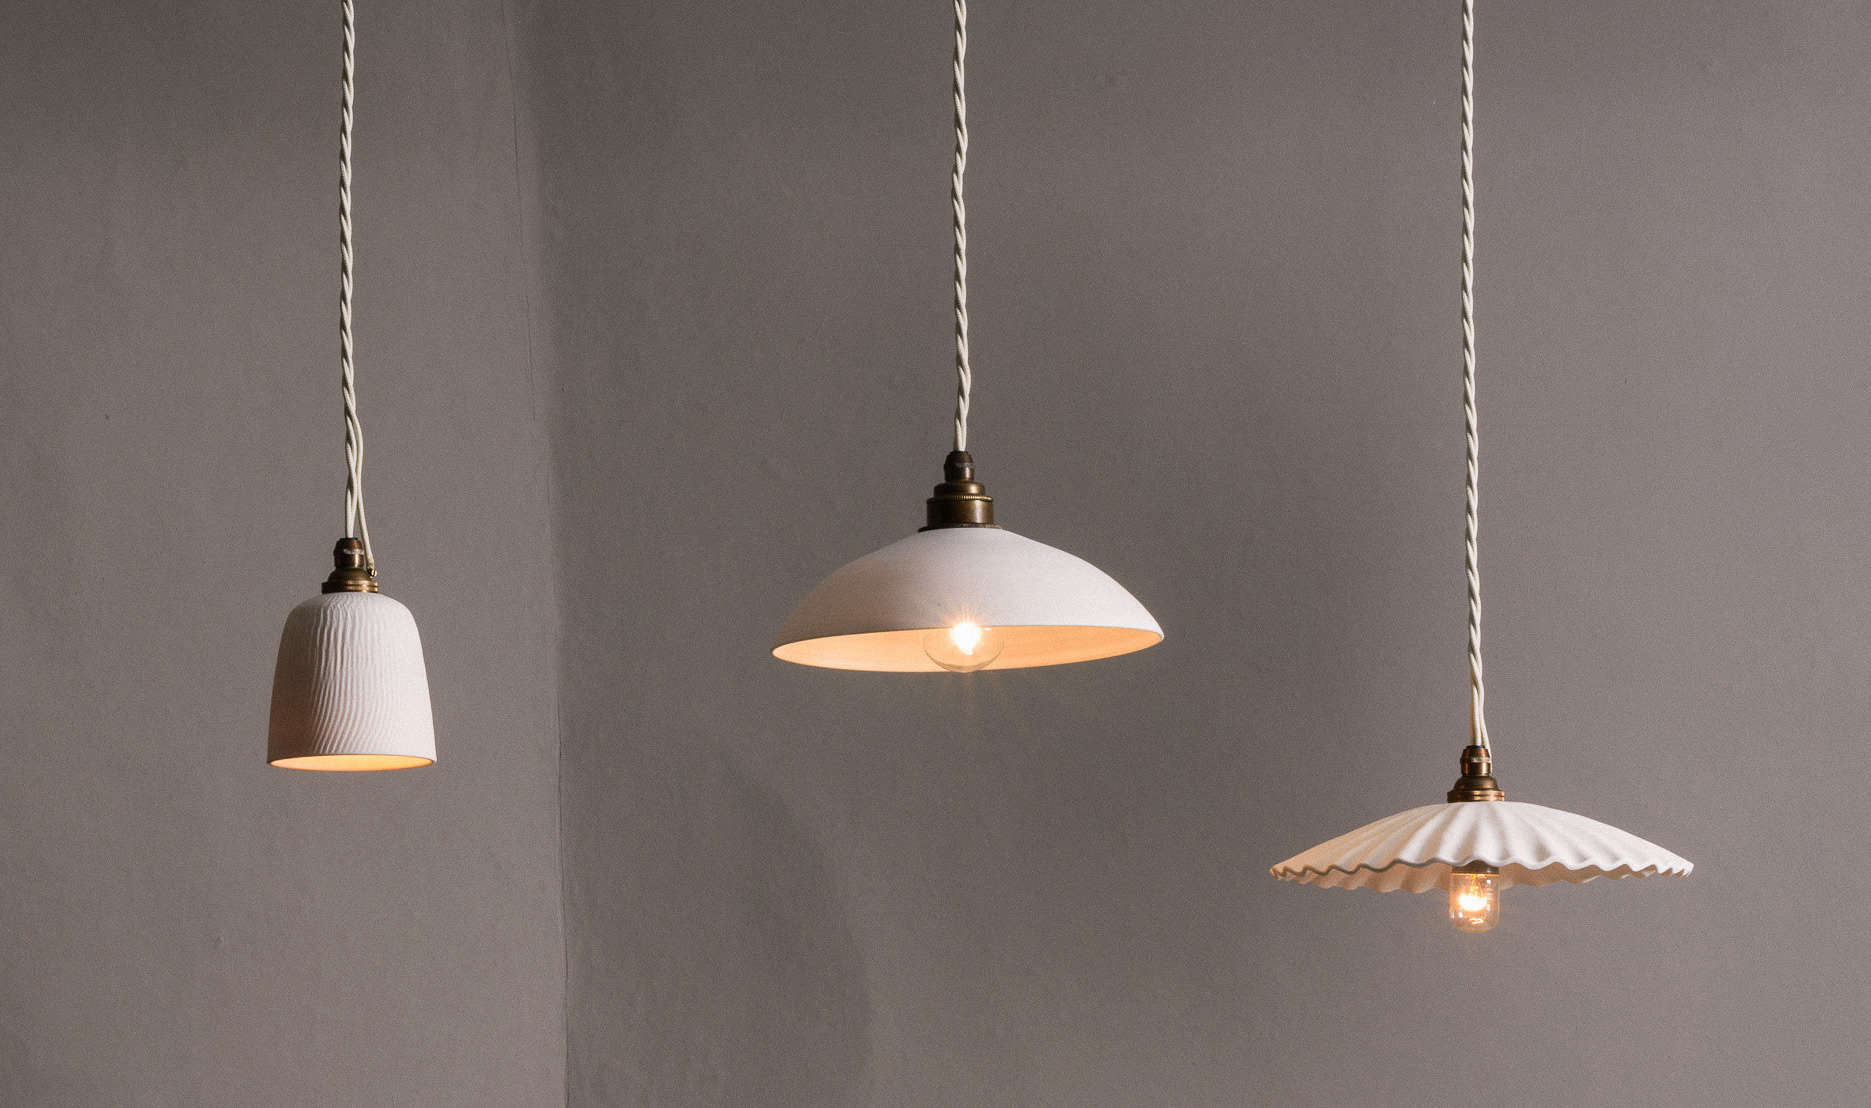 New From Devol A Nyc Showroom And Porcelain Pendant Lights